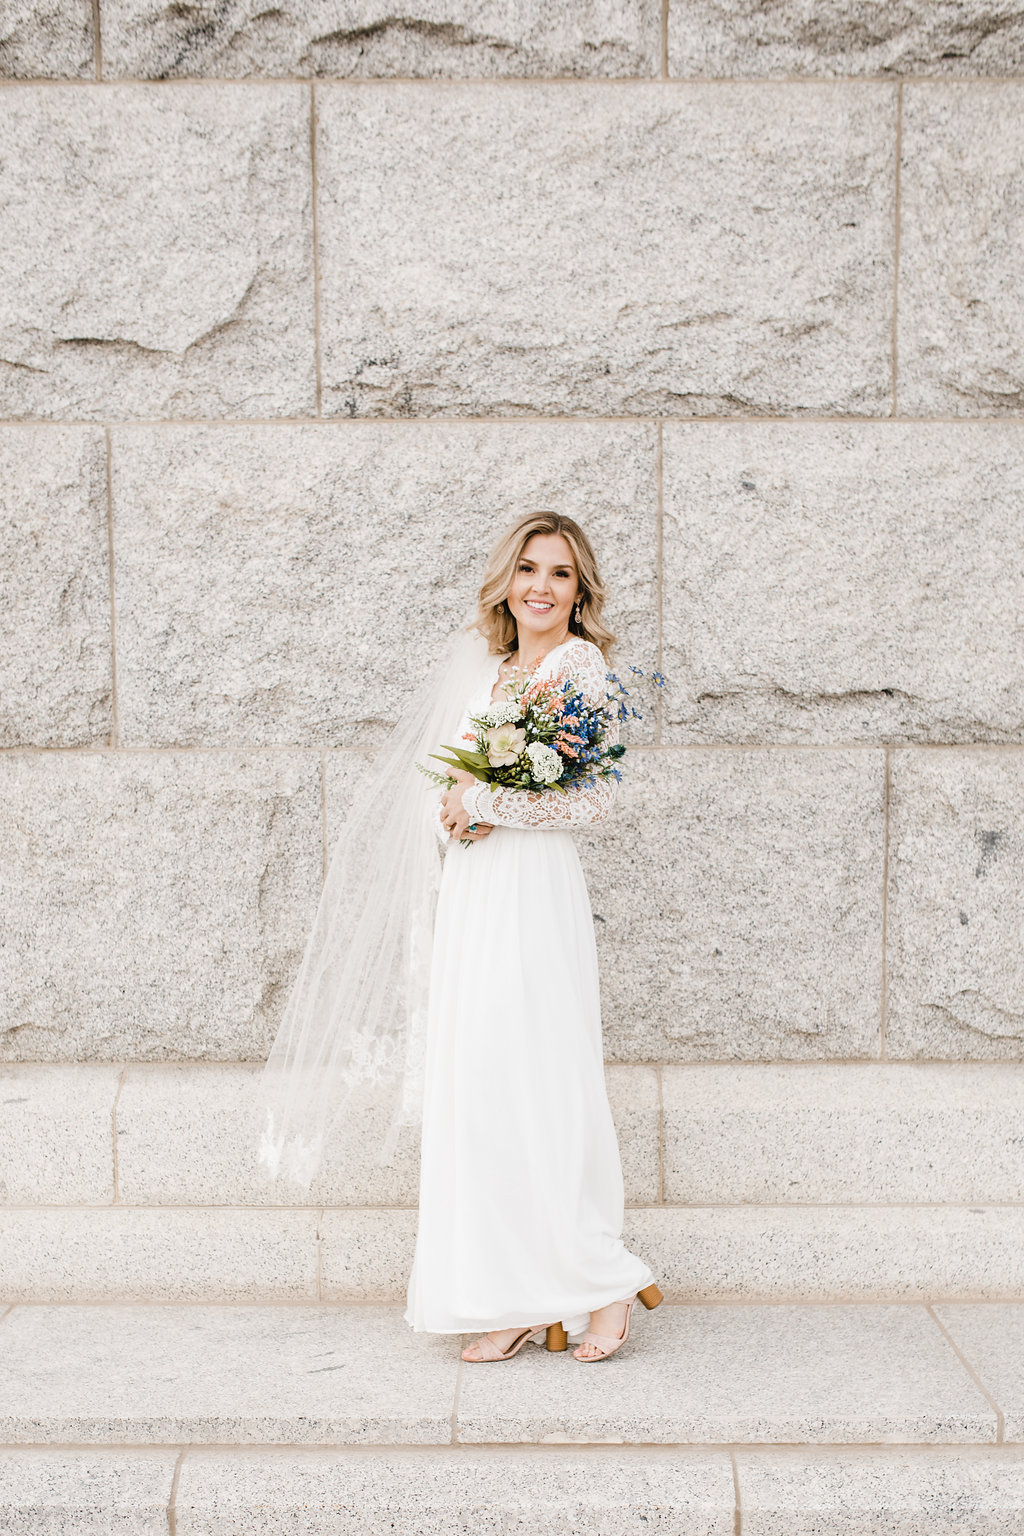 salt lake city wedding photographer bridals utah capitol building calli richards